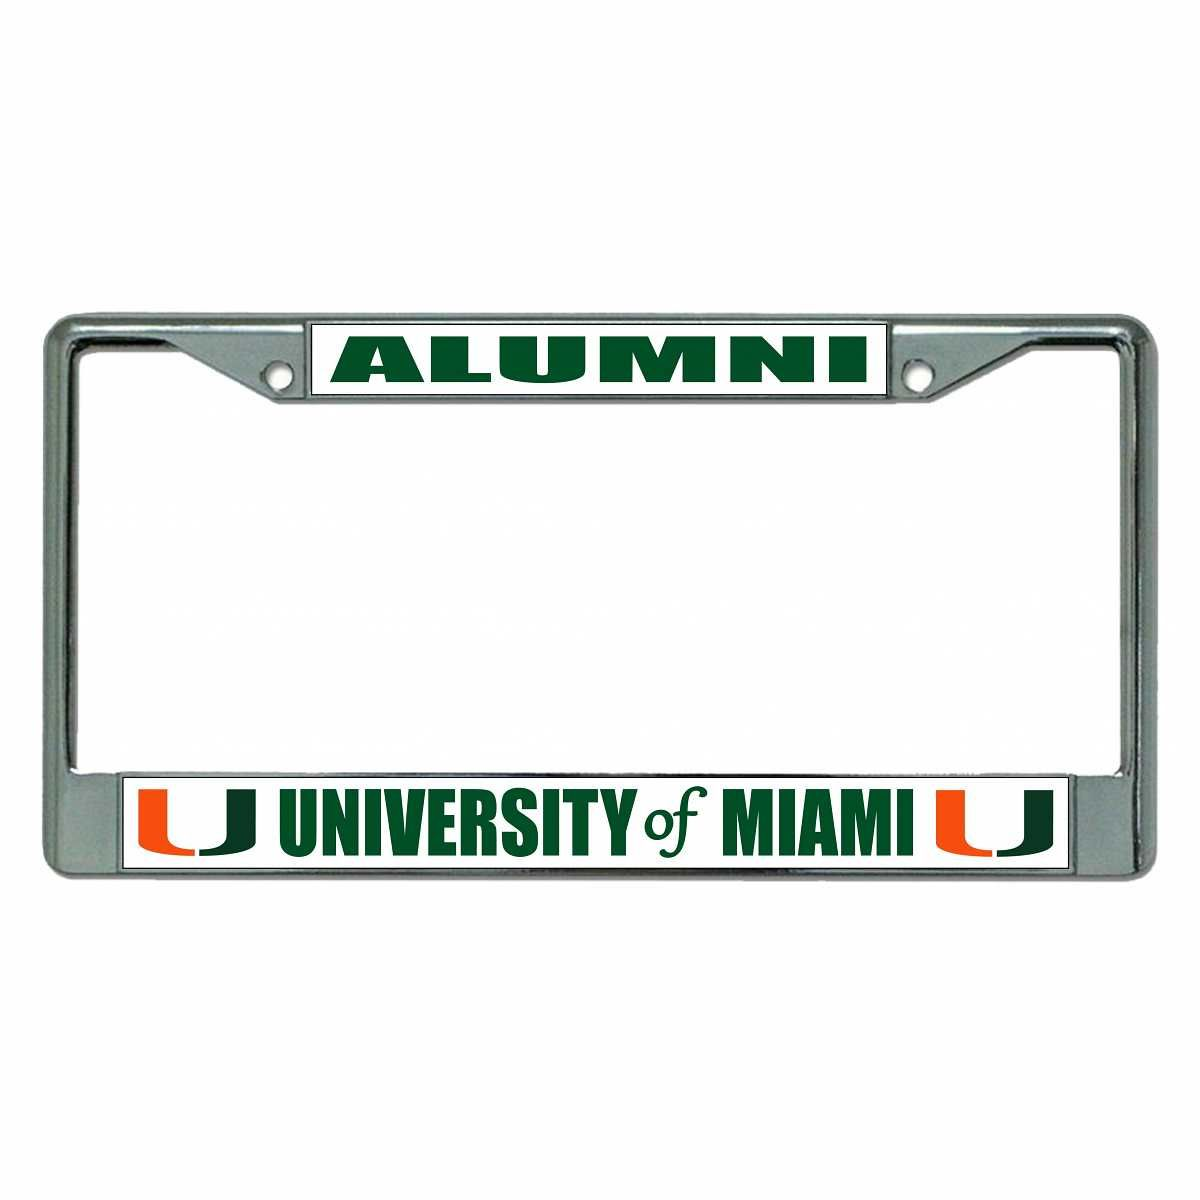 University Of Miami Alumni Photo License Plate Frame | Wanted ...